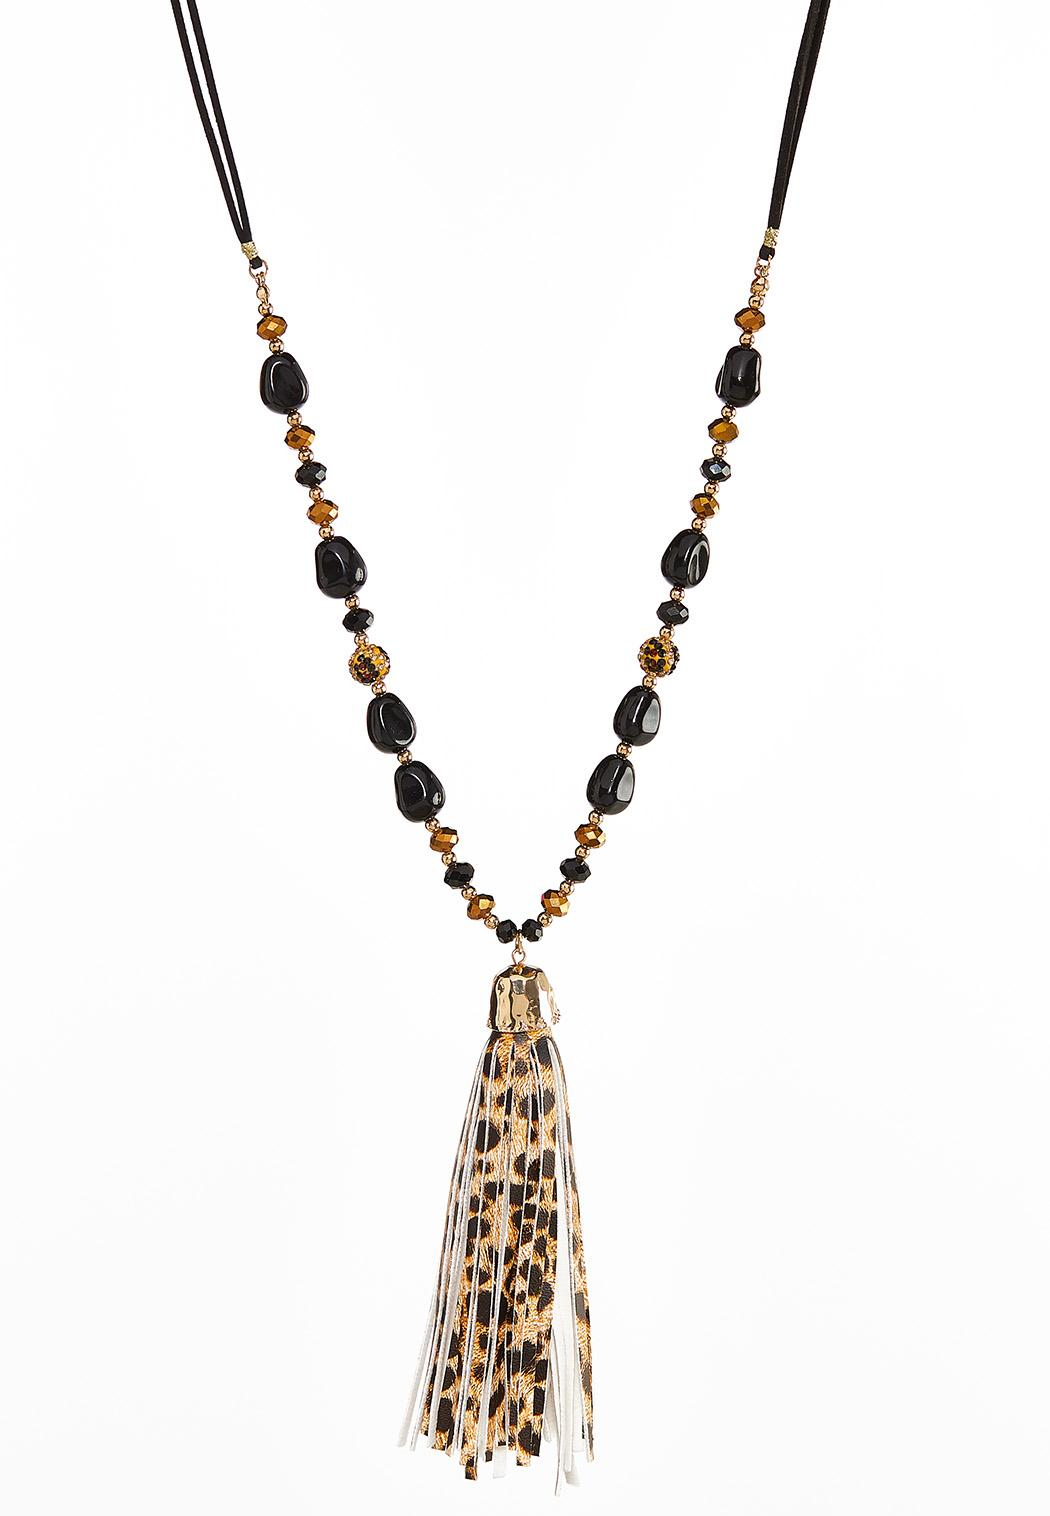 Beaded Leopard Tassel Necklace With Recent Beaded Chain Necklaces (View 16 of 25)